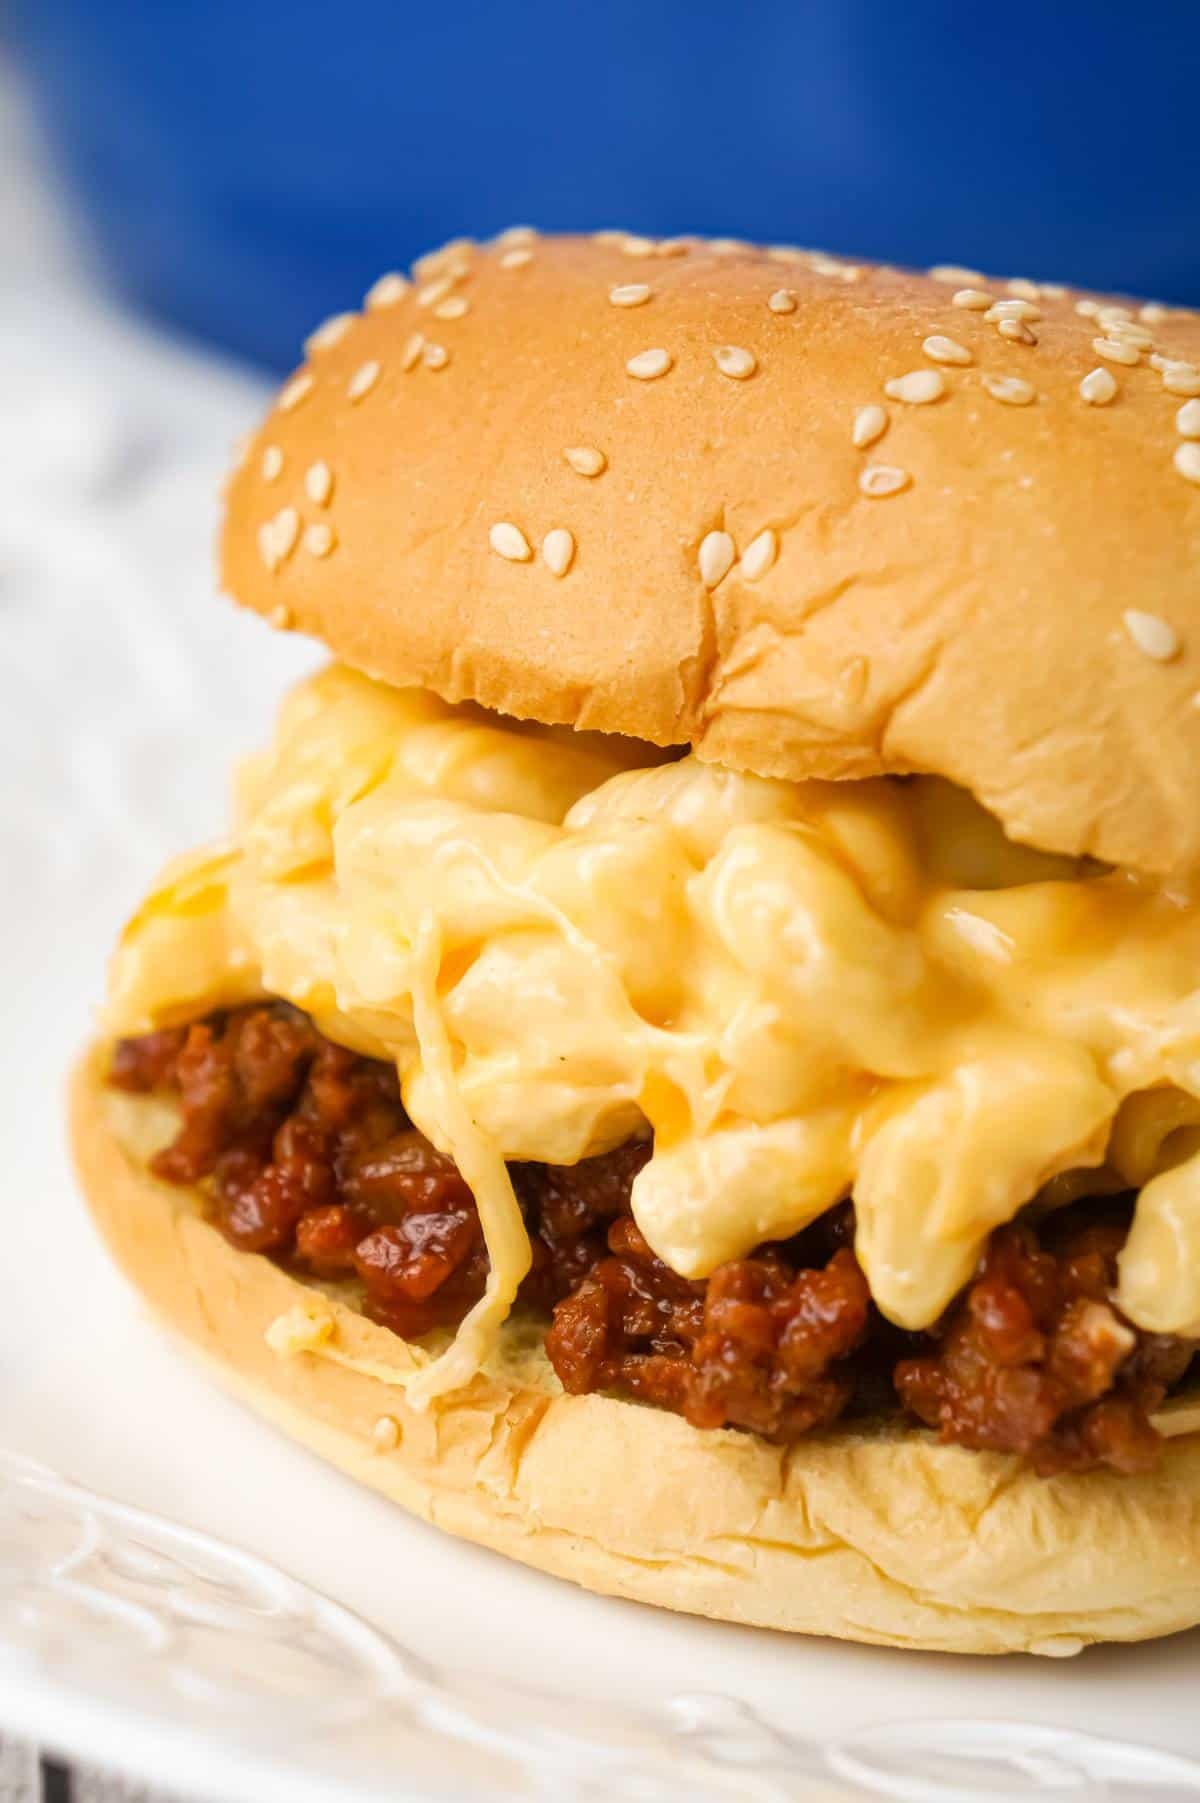 Mac and Cheese Sloppy Joes are hearty ground beef sandwiches topped with macaroni and cheese.